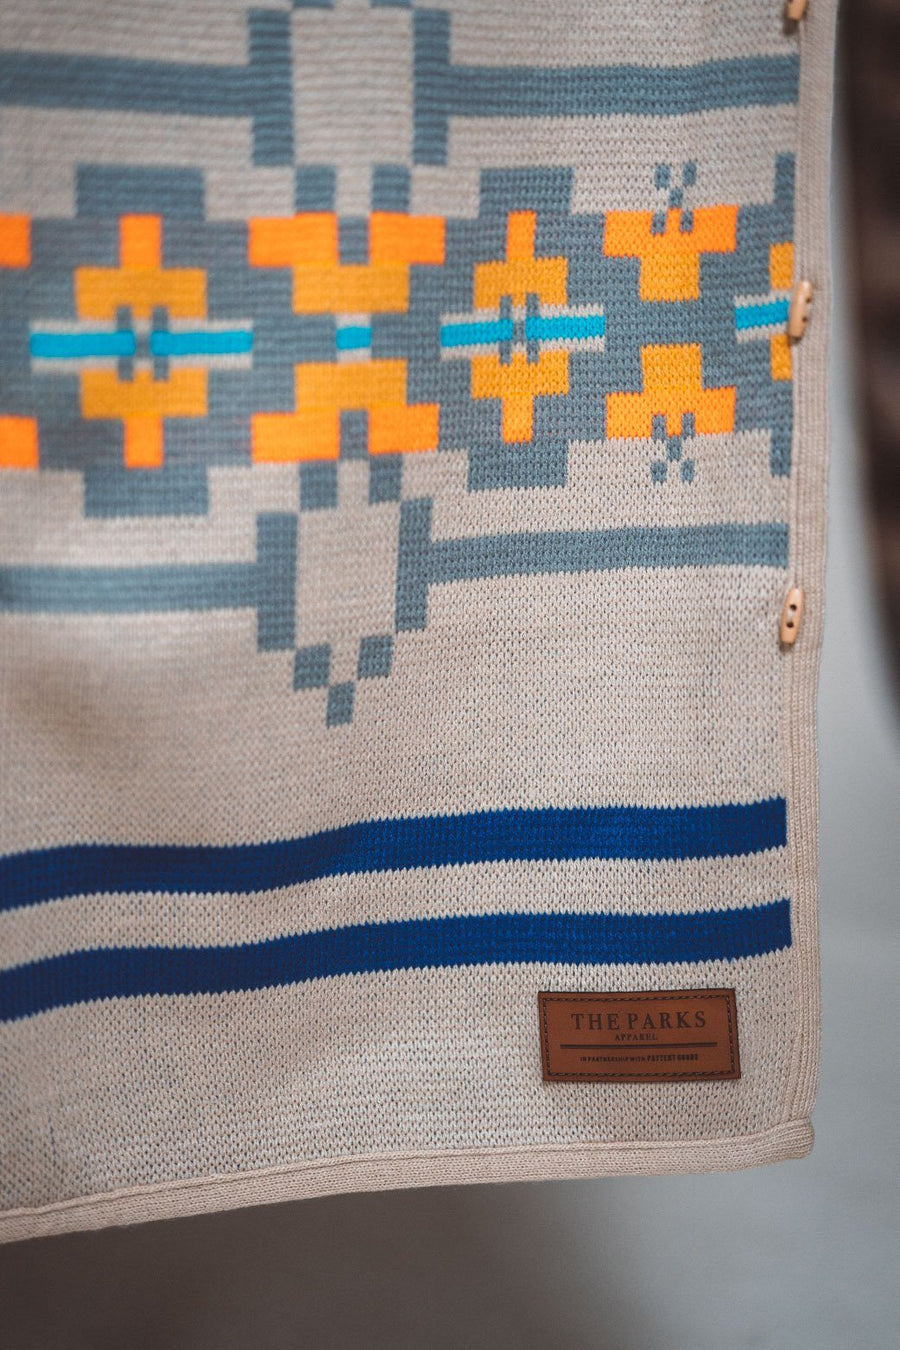 Explorers Wraparound Blanket // Wildly Dunes Edition - Wondery, A Parks Apparel Brand